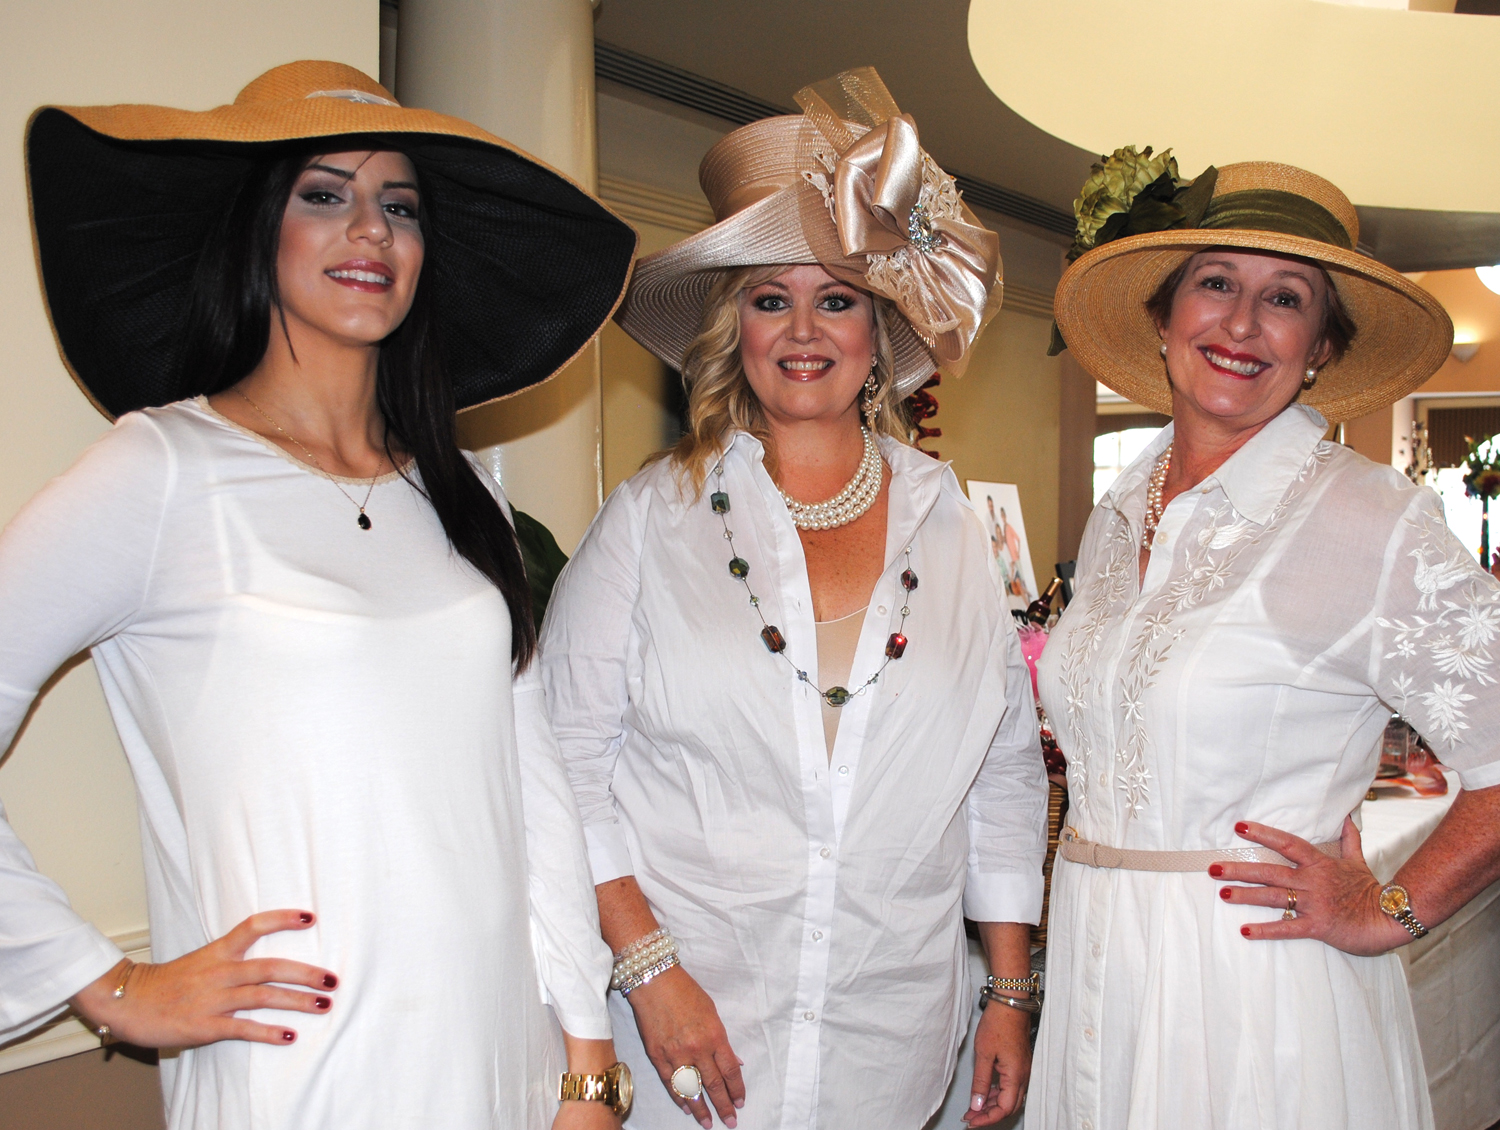 Alexandra Stanley, Jana Miller and Missy Rohrer, from left, show off their hats as they walk about the ballroom during the Just A Pretty Table Luncheon.